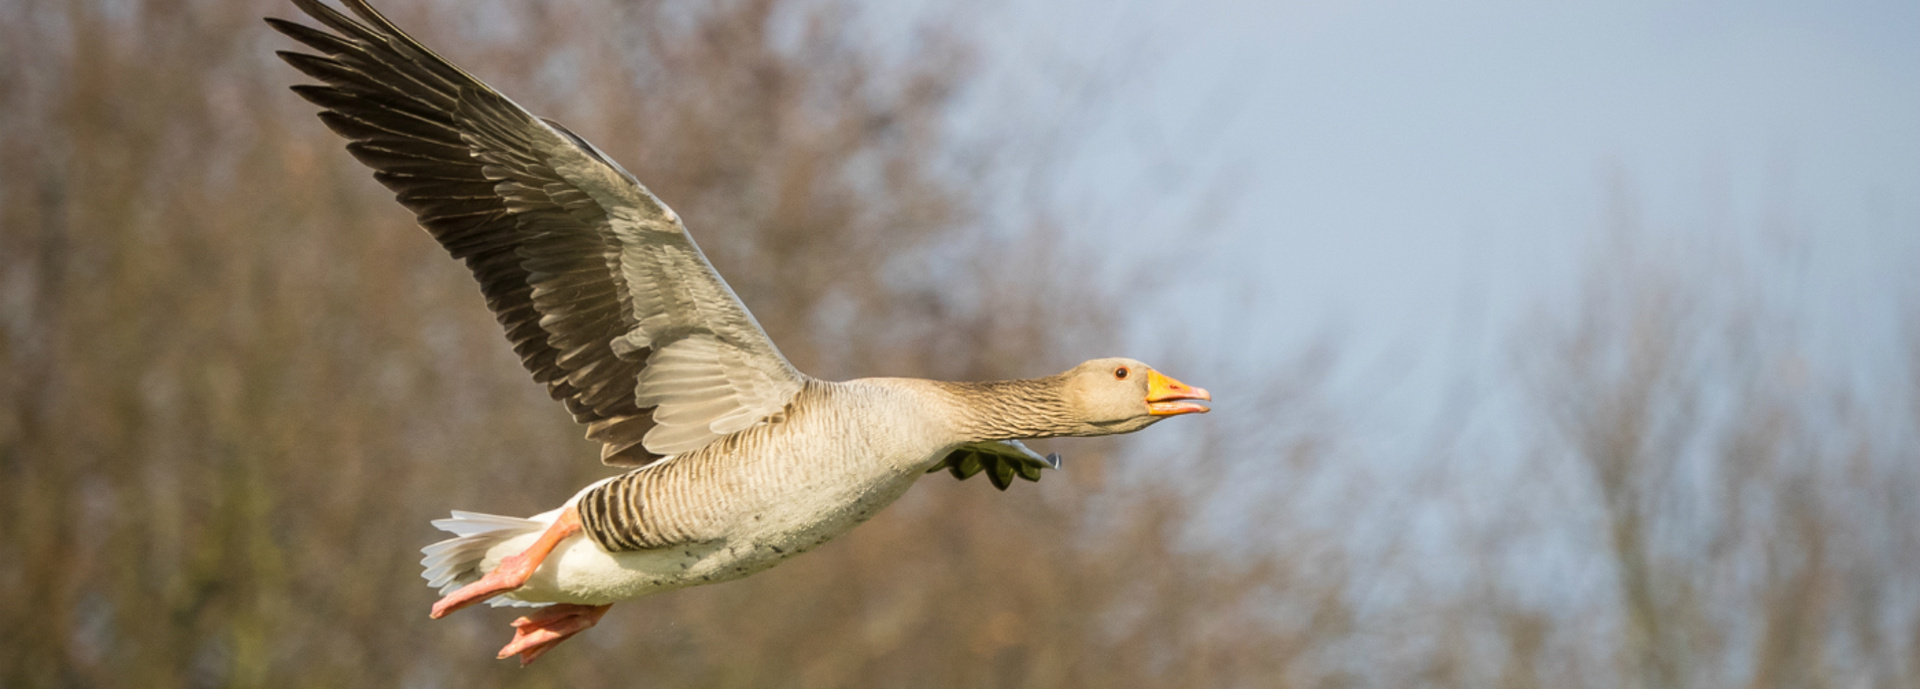 An image of a Pink Footed Goose